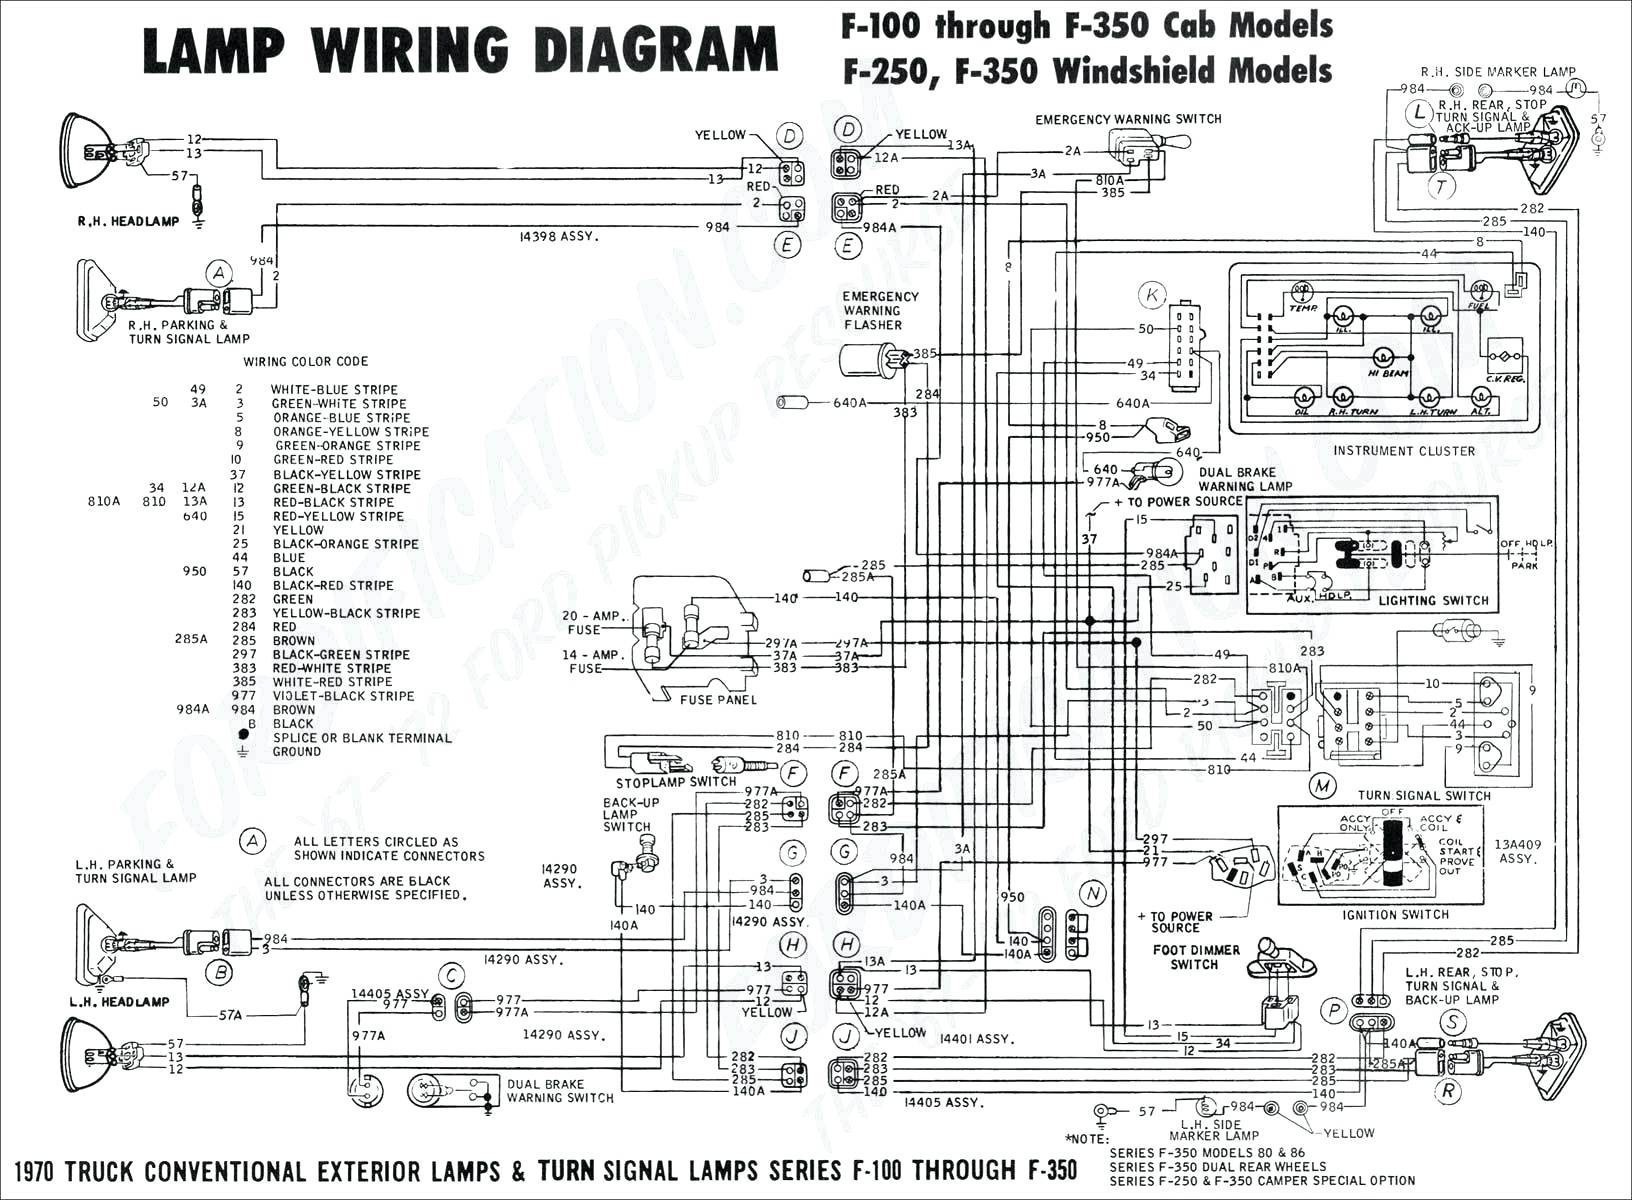 chevy silverado tail light wiring diagram wiring diagram for bulkhead lights 2019 2005 chevy silverado tail light wiring diagram unique lovely trailer 1g